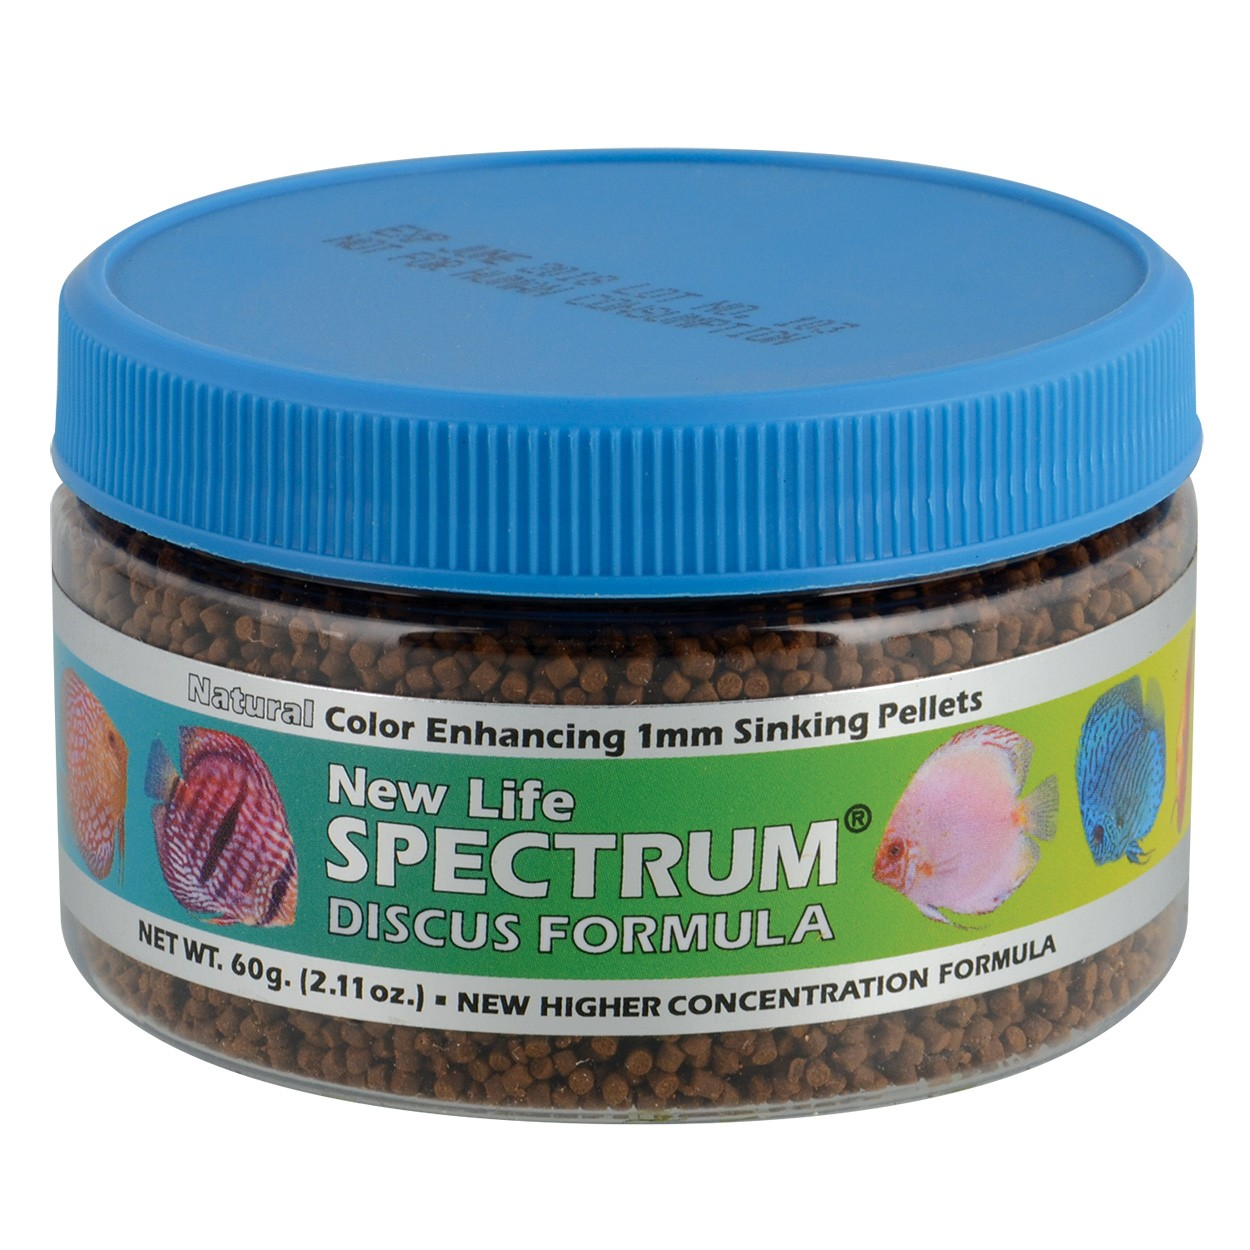 New Life Spectrum Discus Formula 1 Mm Sinking Pellets